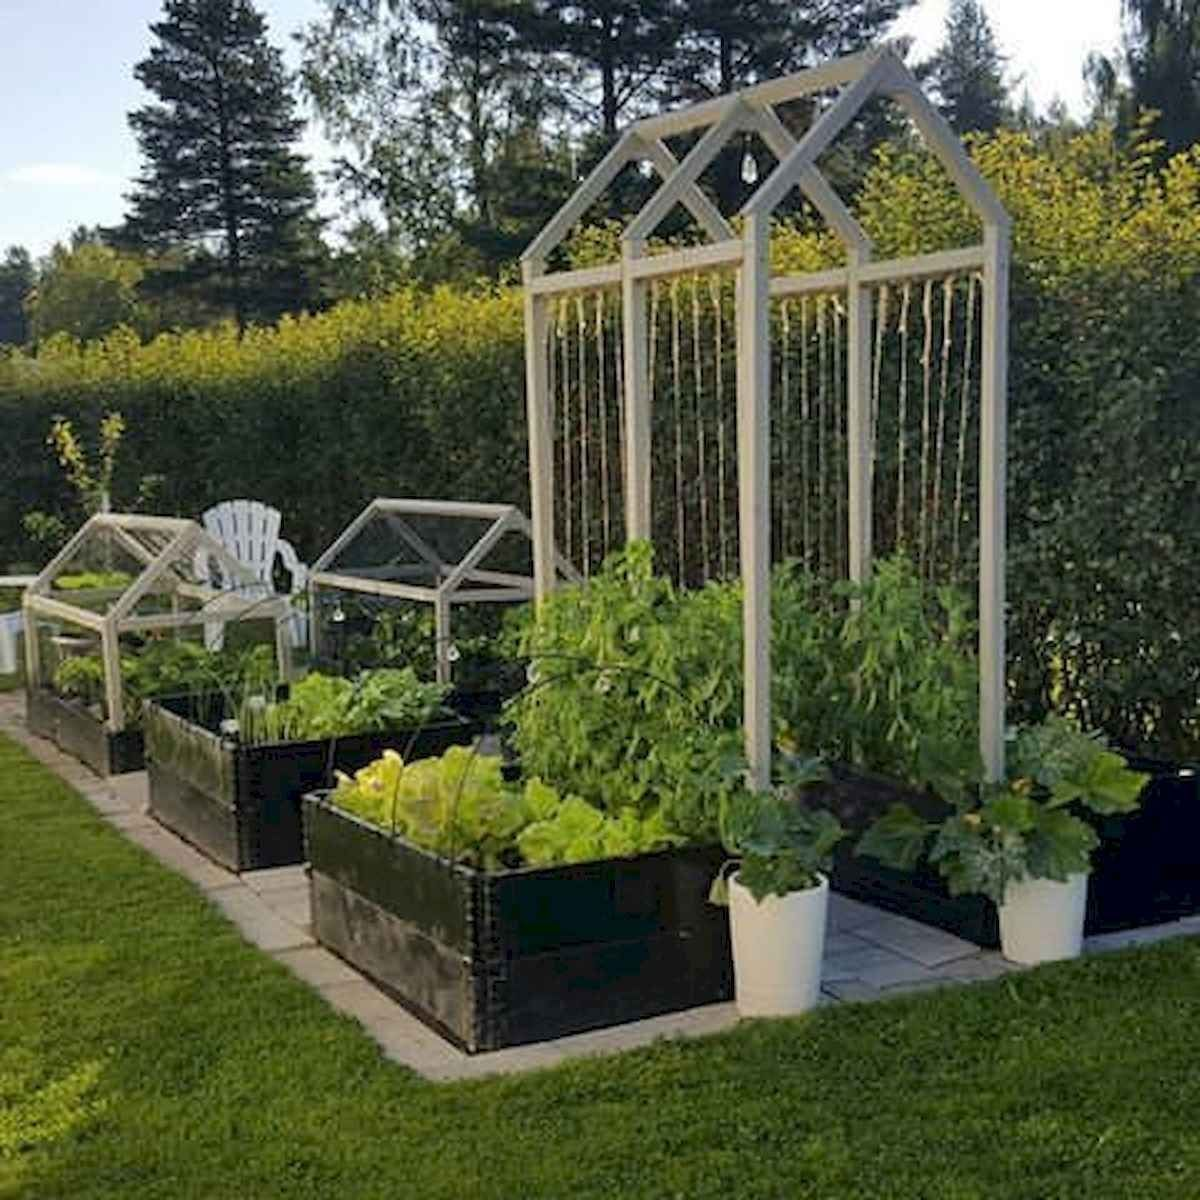 20+ #Fabulous #Garden #Design #Ideas #For #Small #Space #That #Looks #Cool